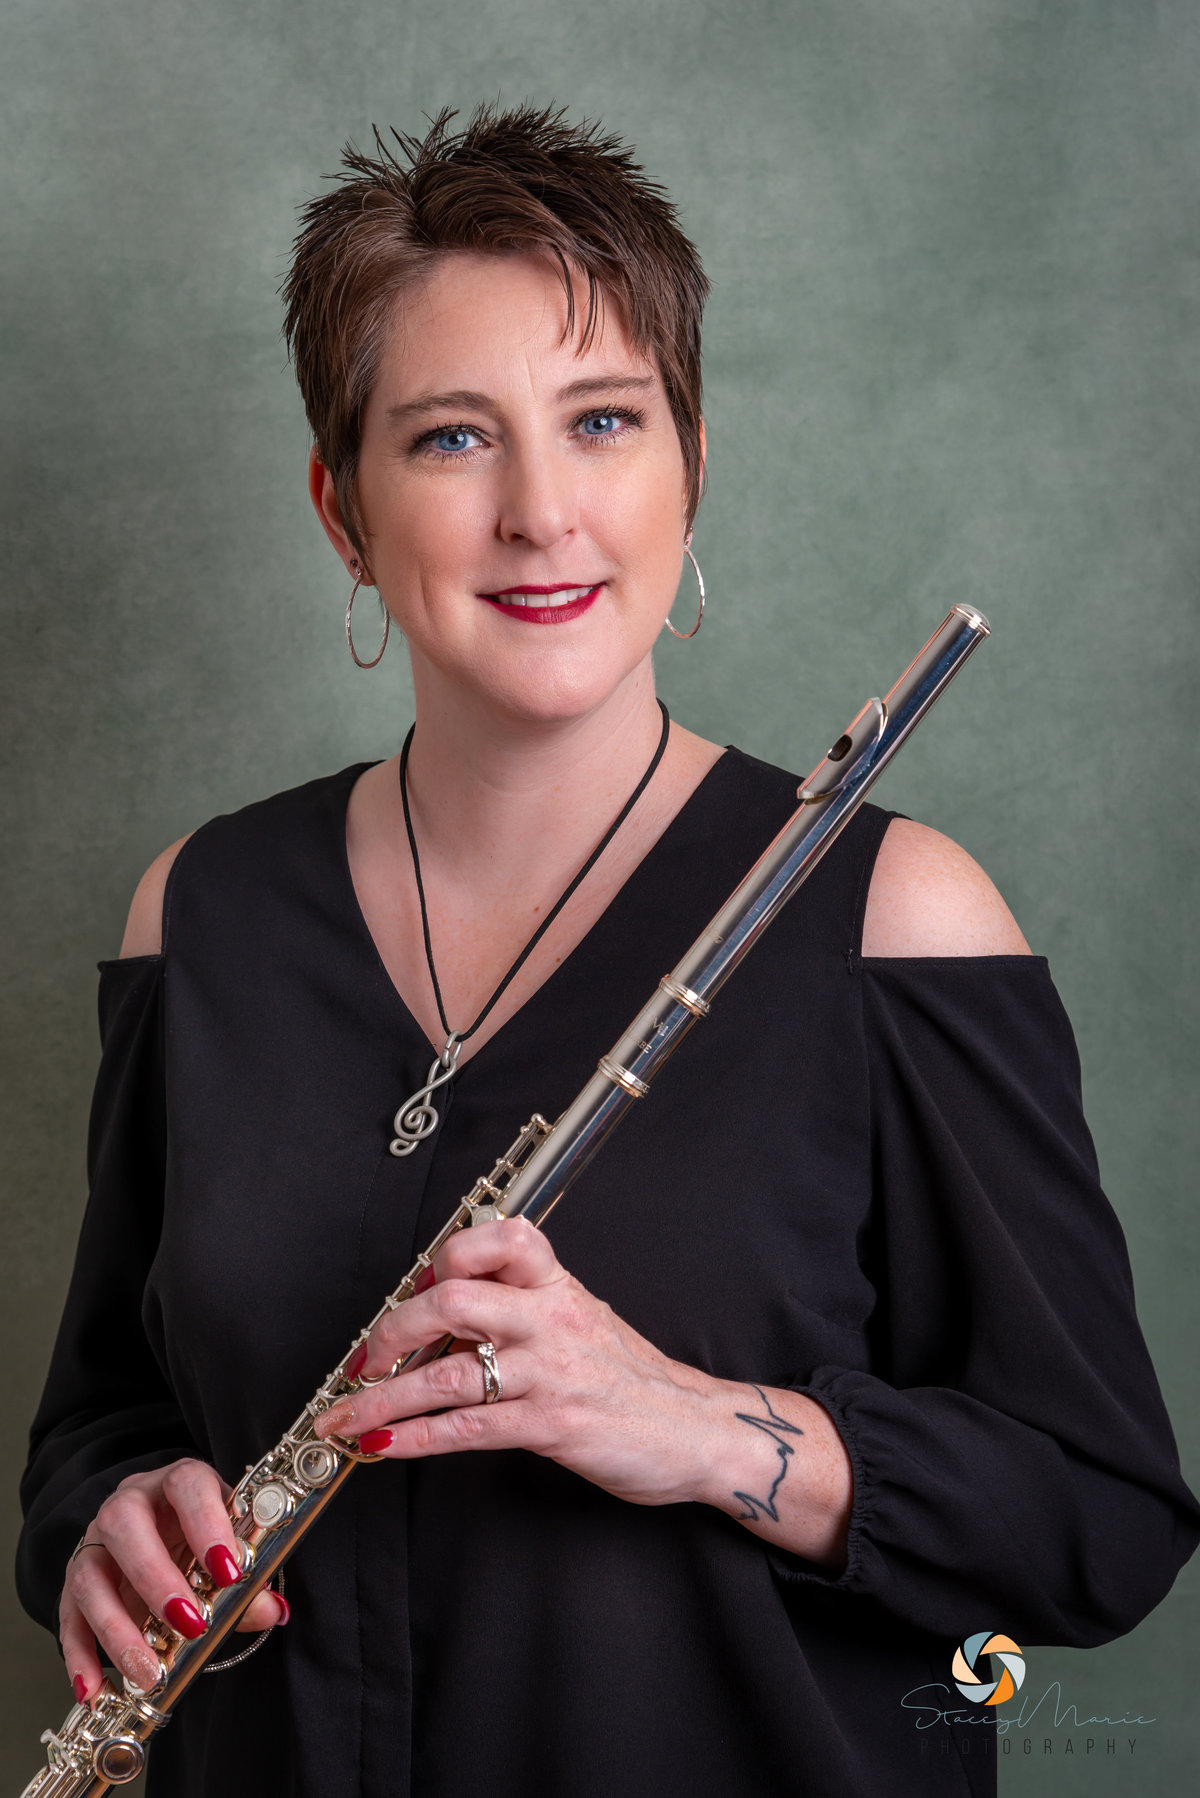 Headshot of a musician holding a flute